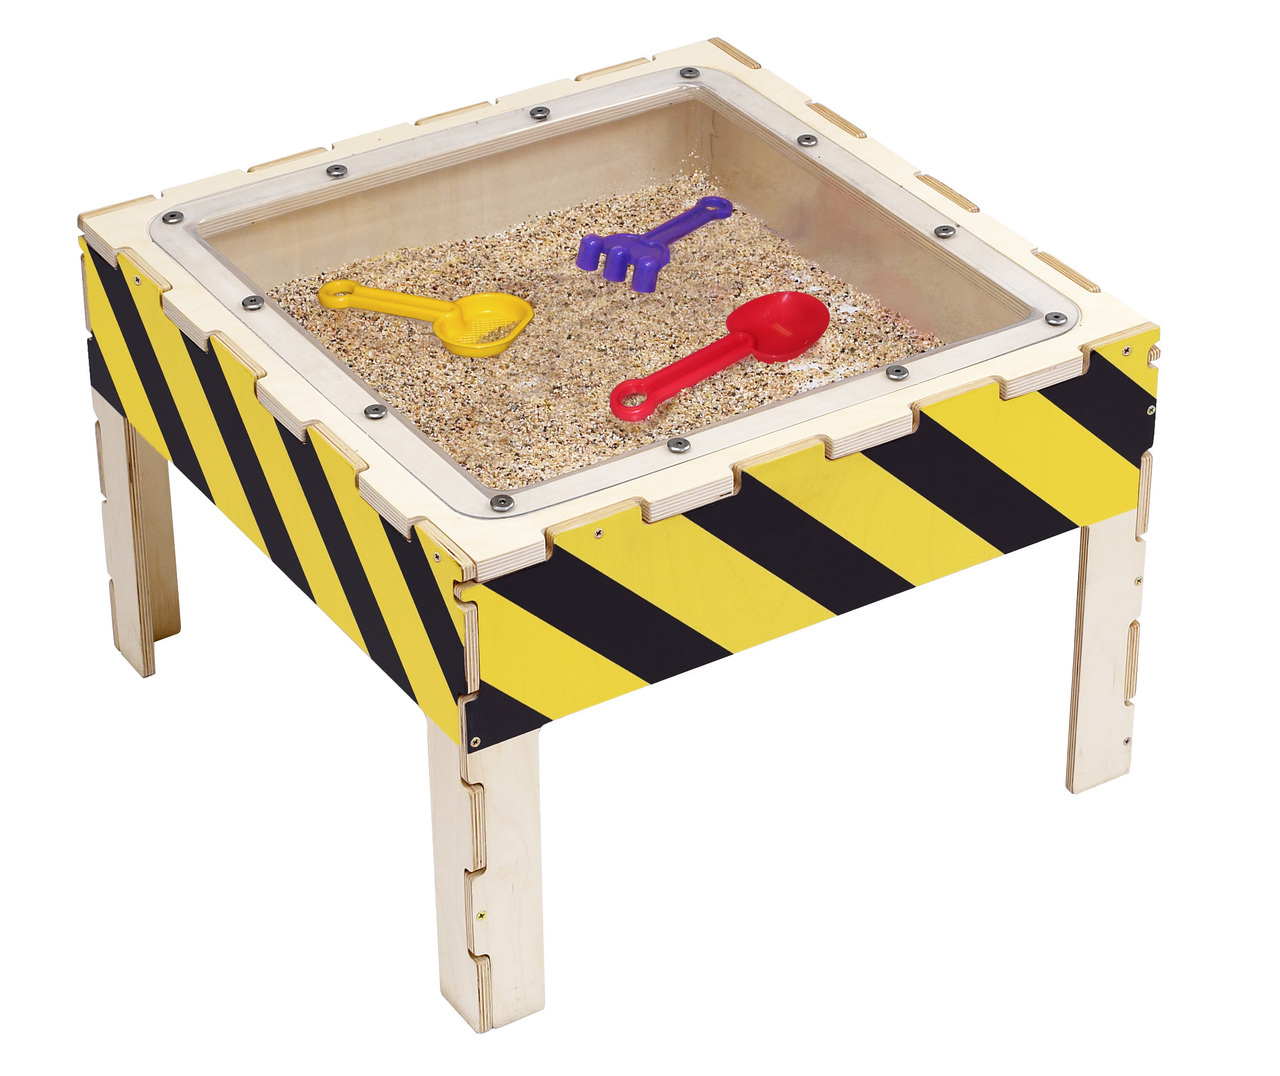 Merveilleux Sand Play Table